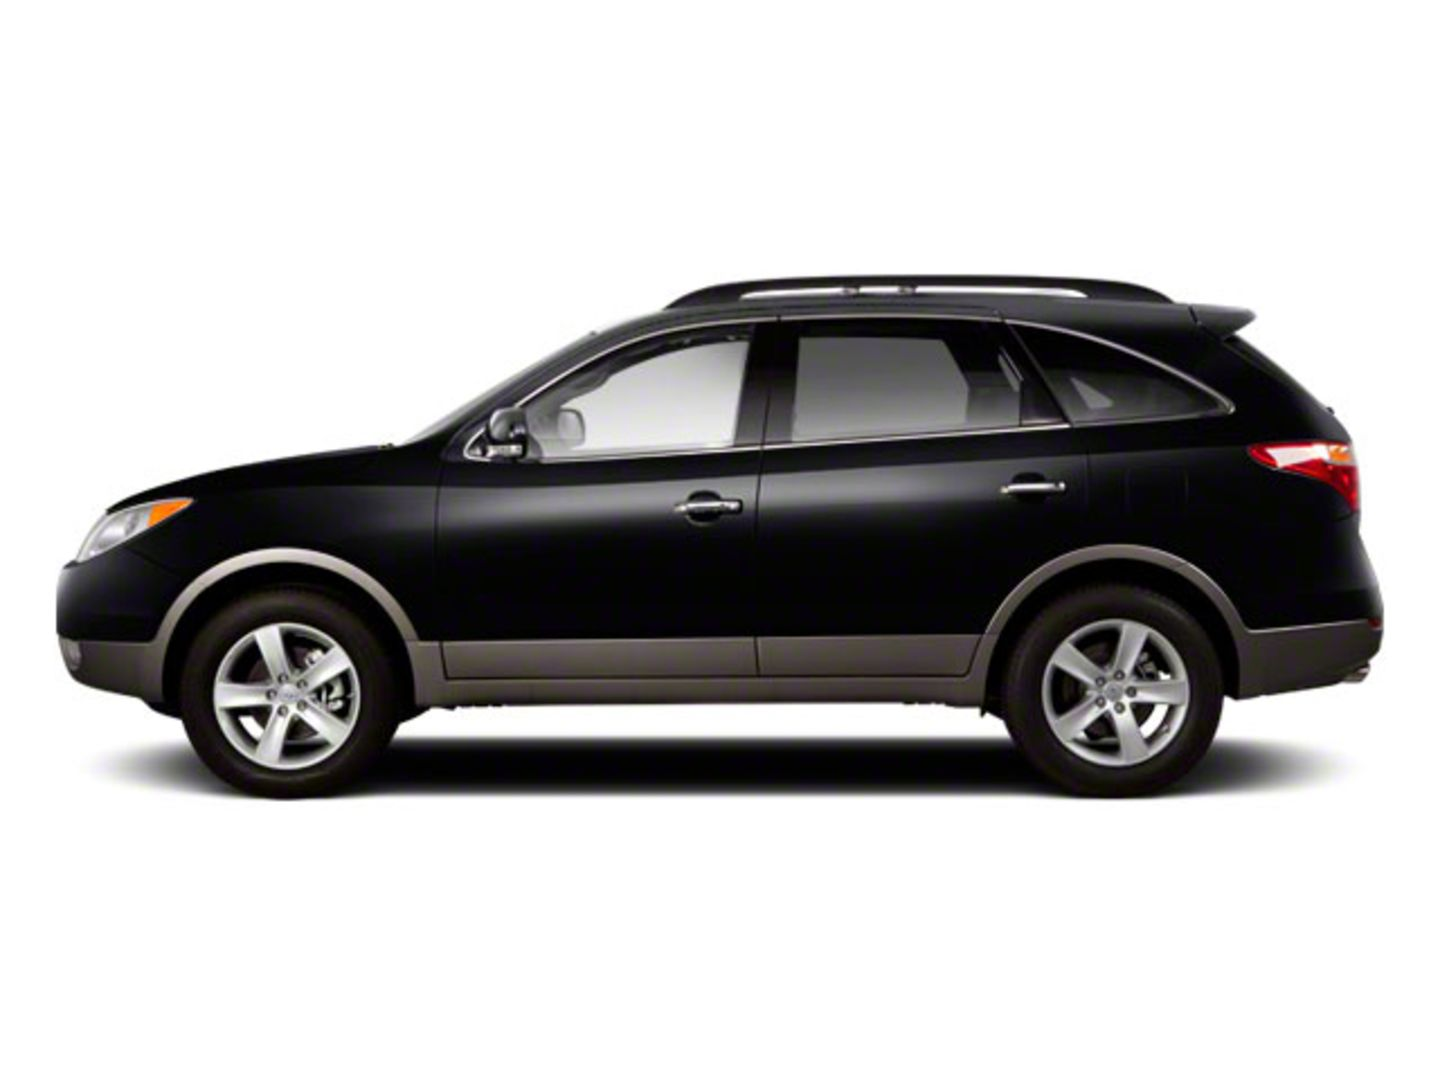 2012 Hyundai Veracruz GLS for sale in Spruce Grove, Alberta